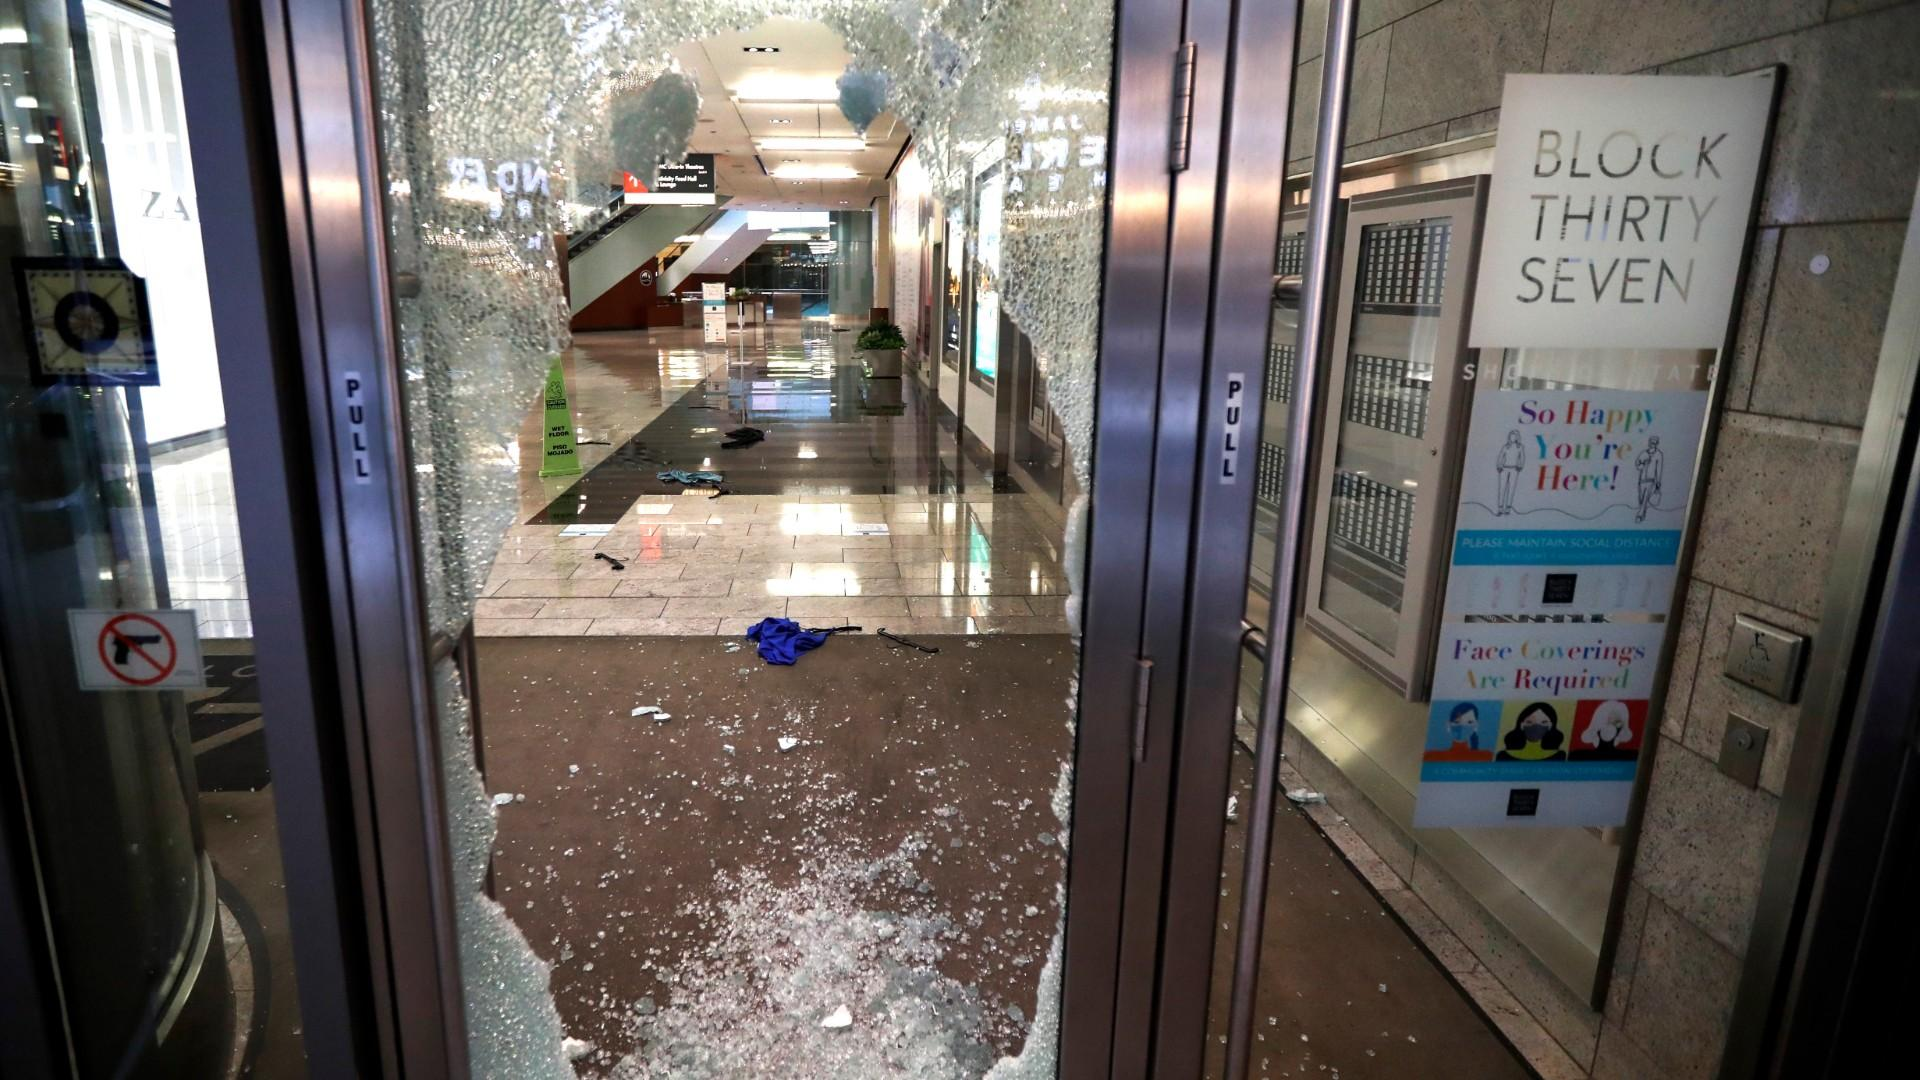 A door to the Block 37 retail building is shattered Monday, Aug. 10, 2020, after vandals struck overnight in Chicago's famed Loop. (AP Photo / Charles Rex Arbogast)